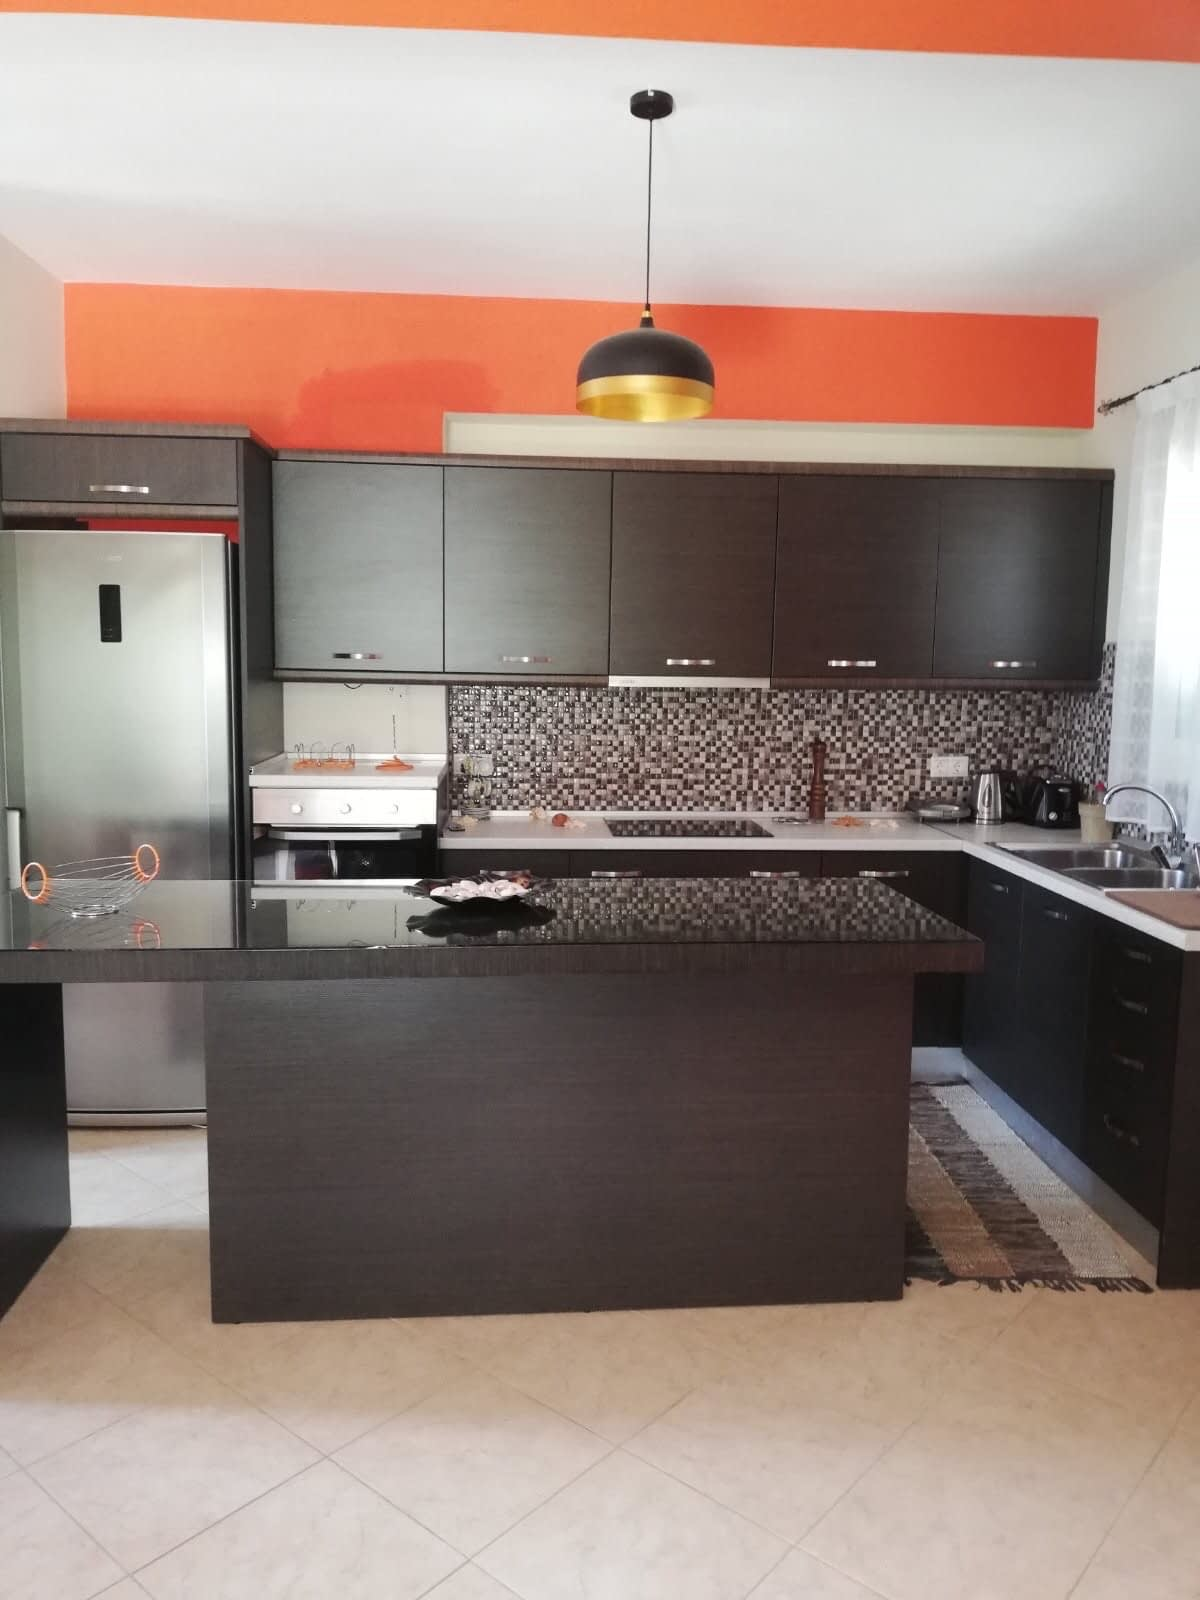 Kitchen of property for sale in Ithaca Greece Vathi